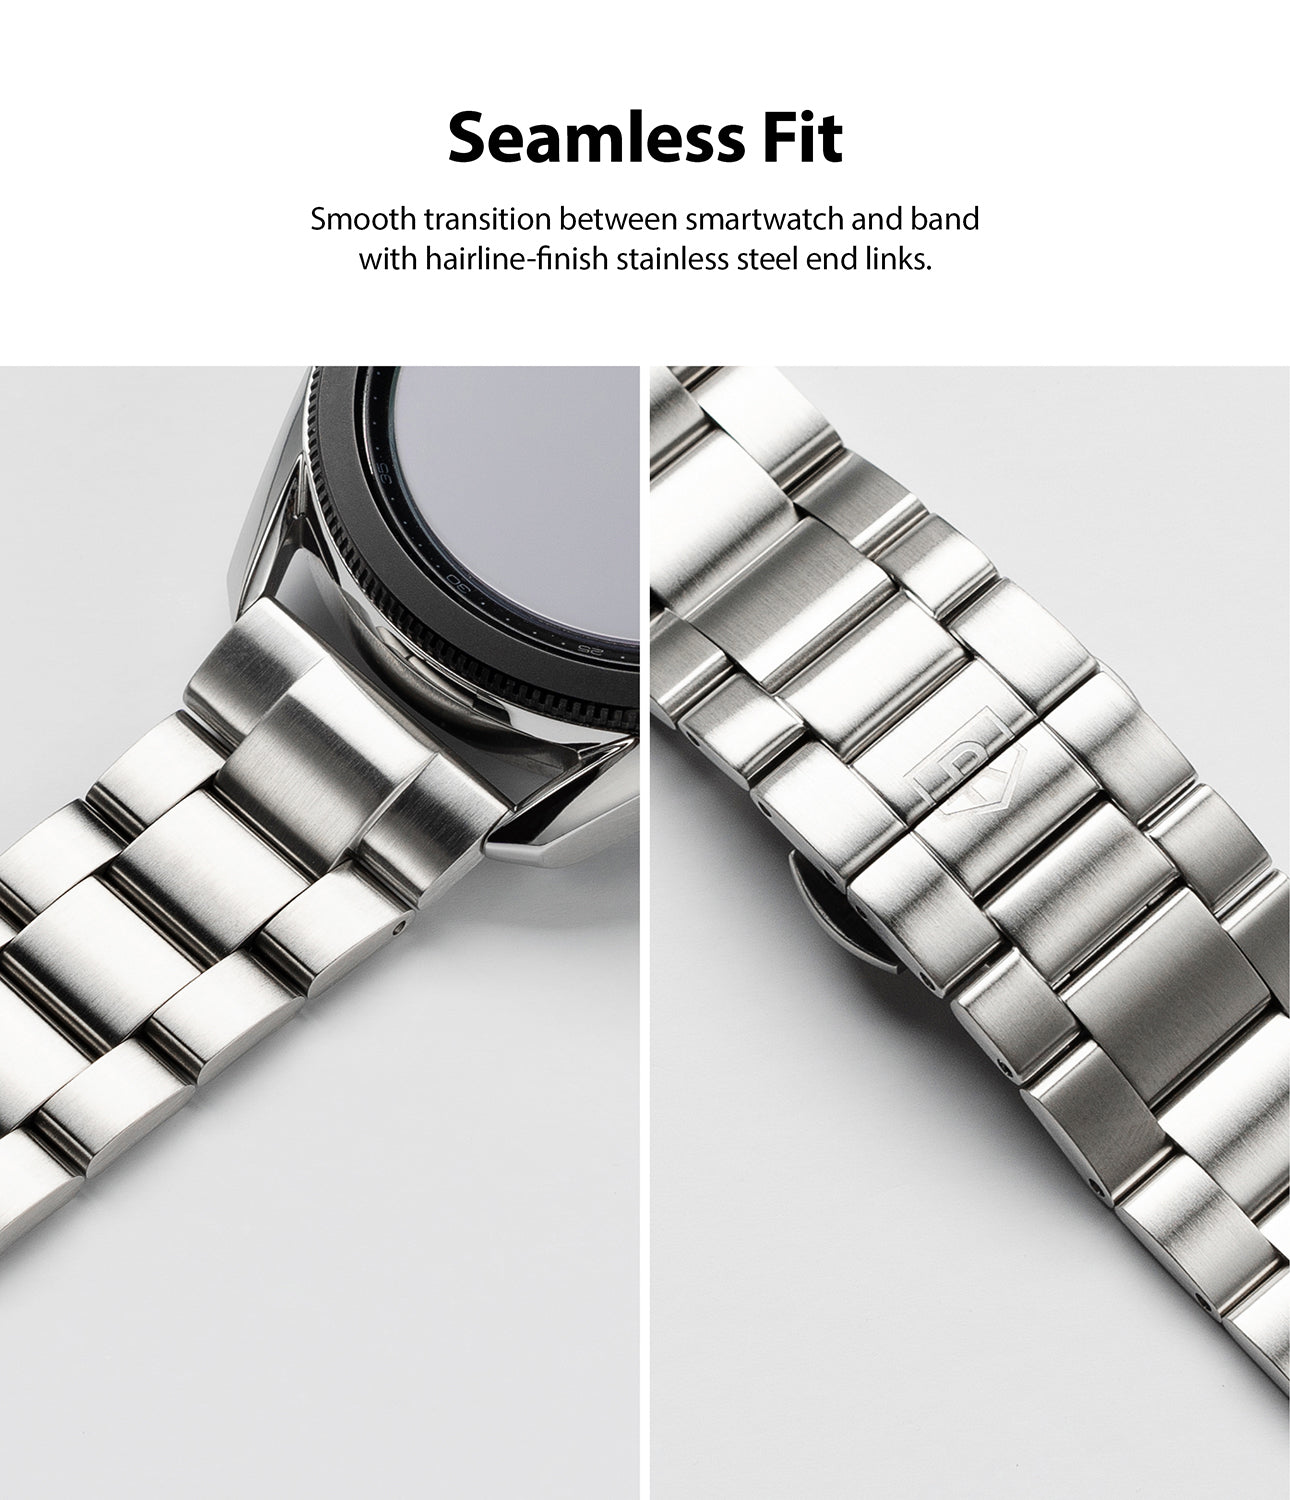 smooth transition between smartwatch and band with hairline-finish stainless steel end links